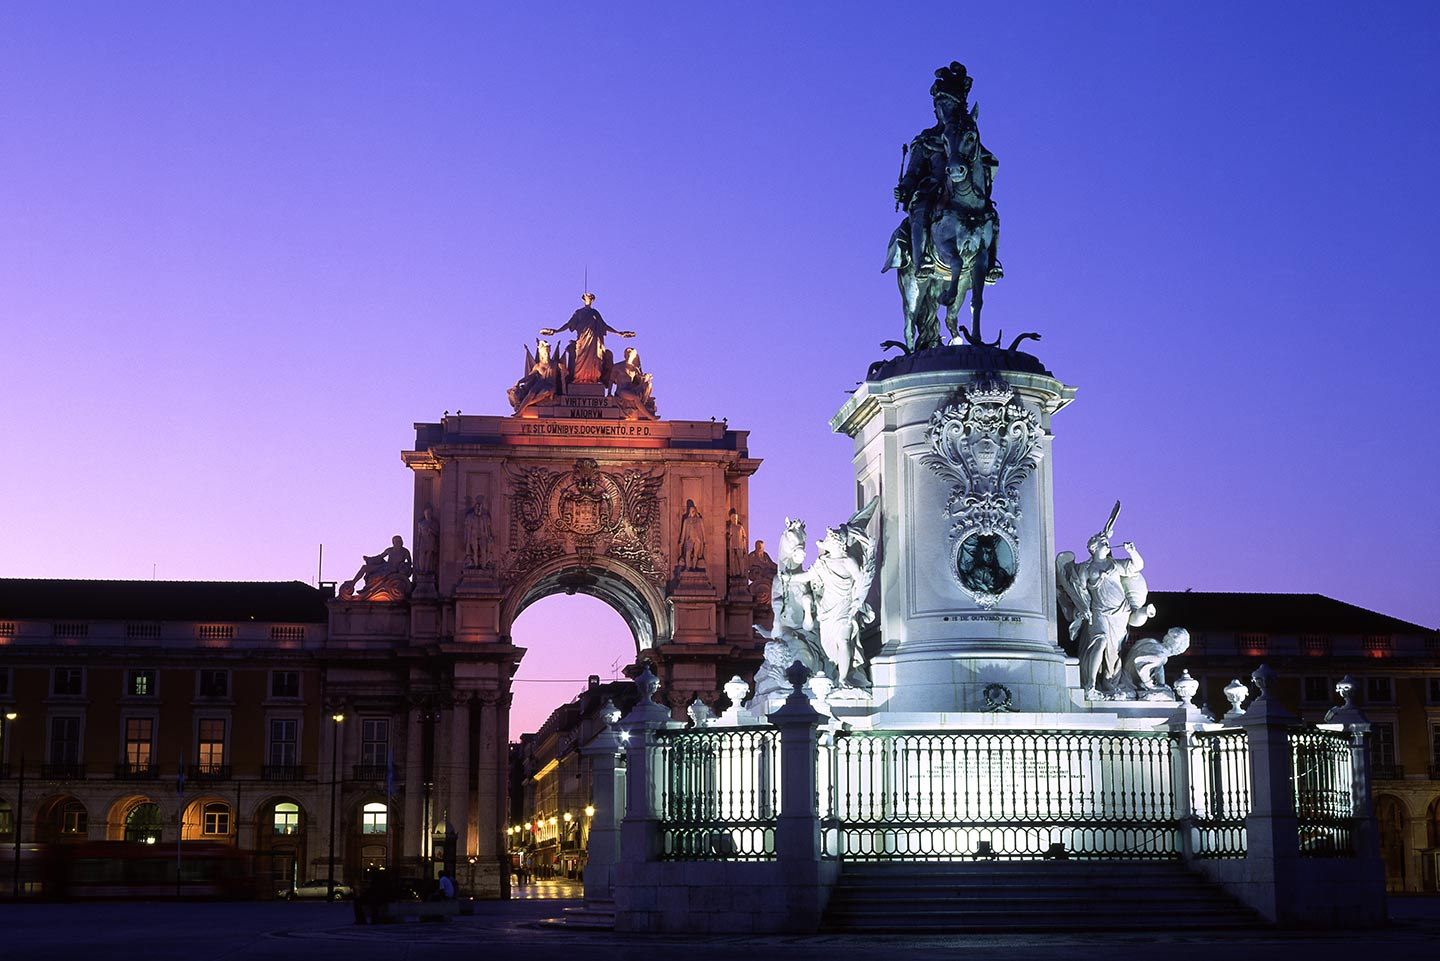 Image of Praça do Comercio square and Arco da Rua Augusta, LIsbon